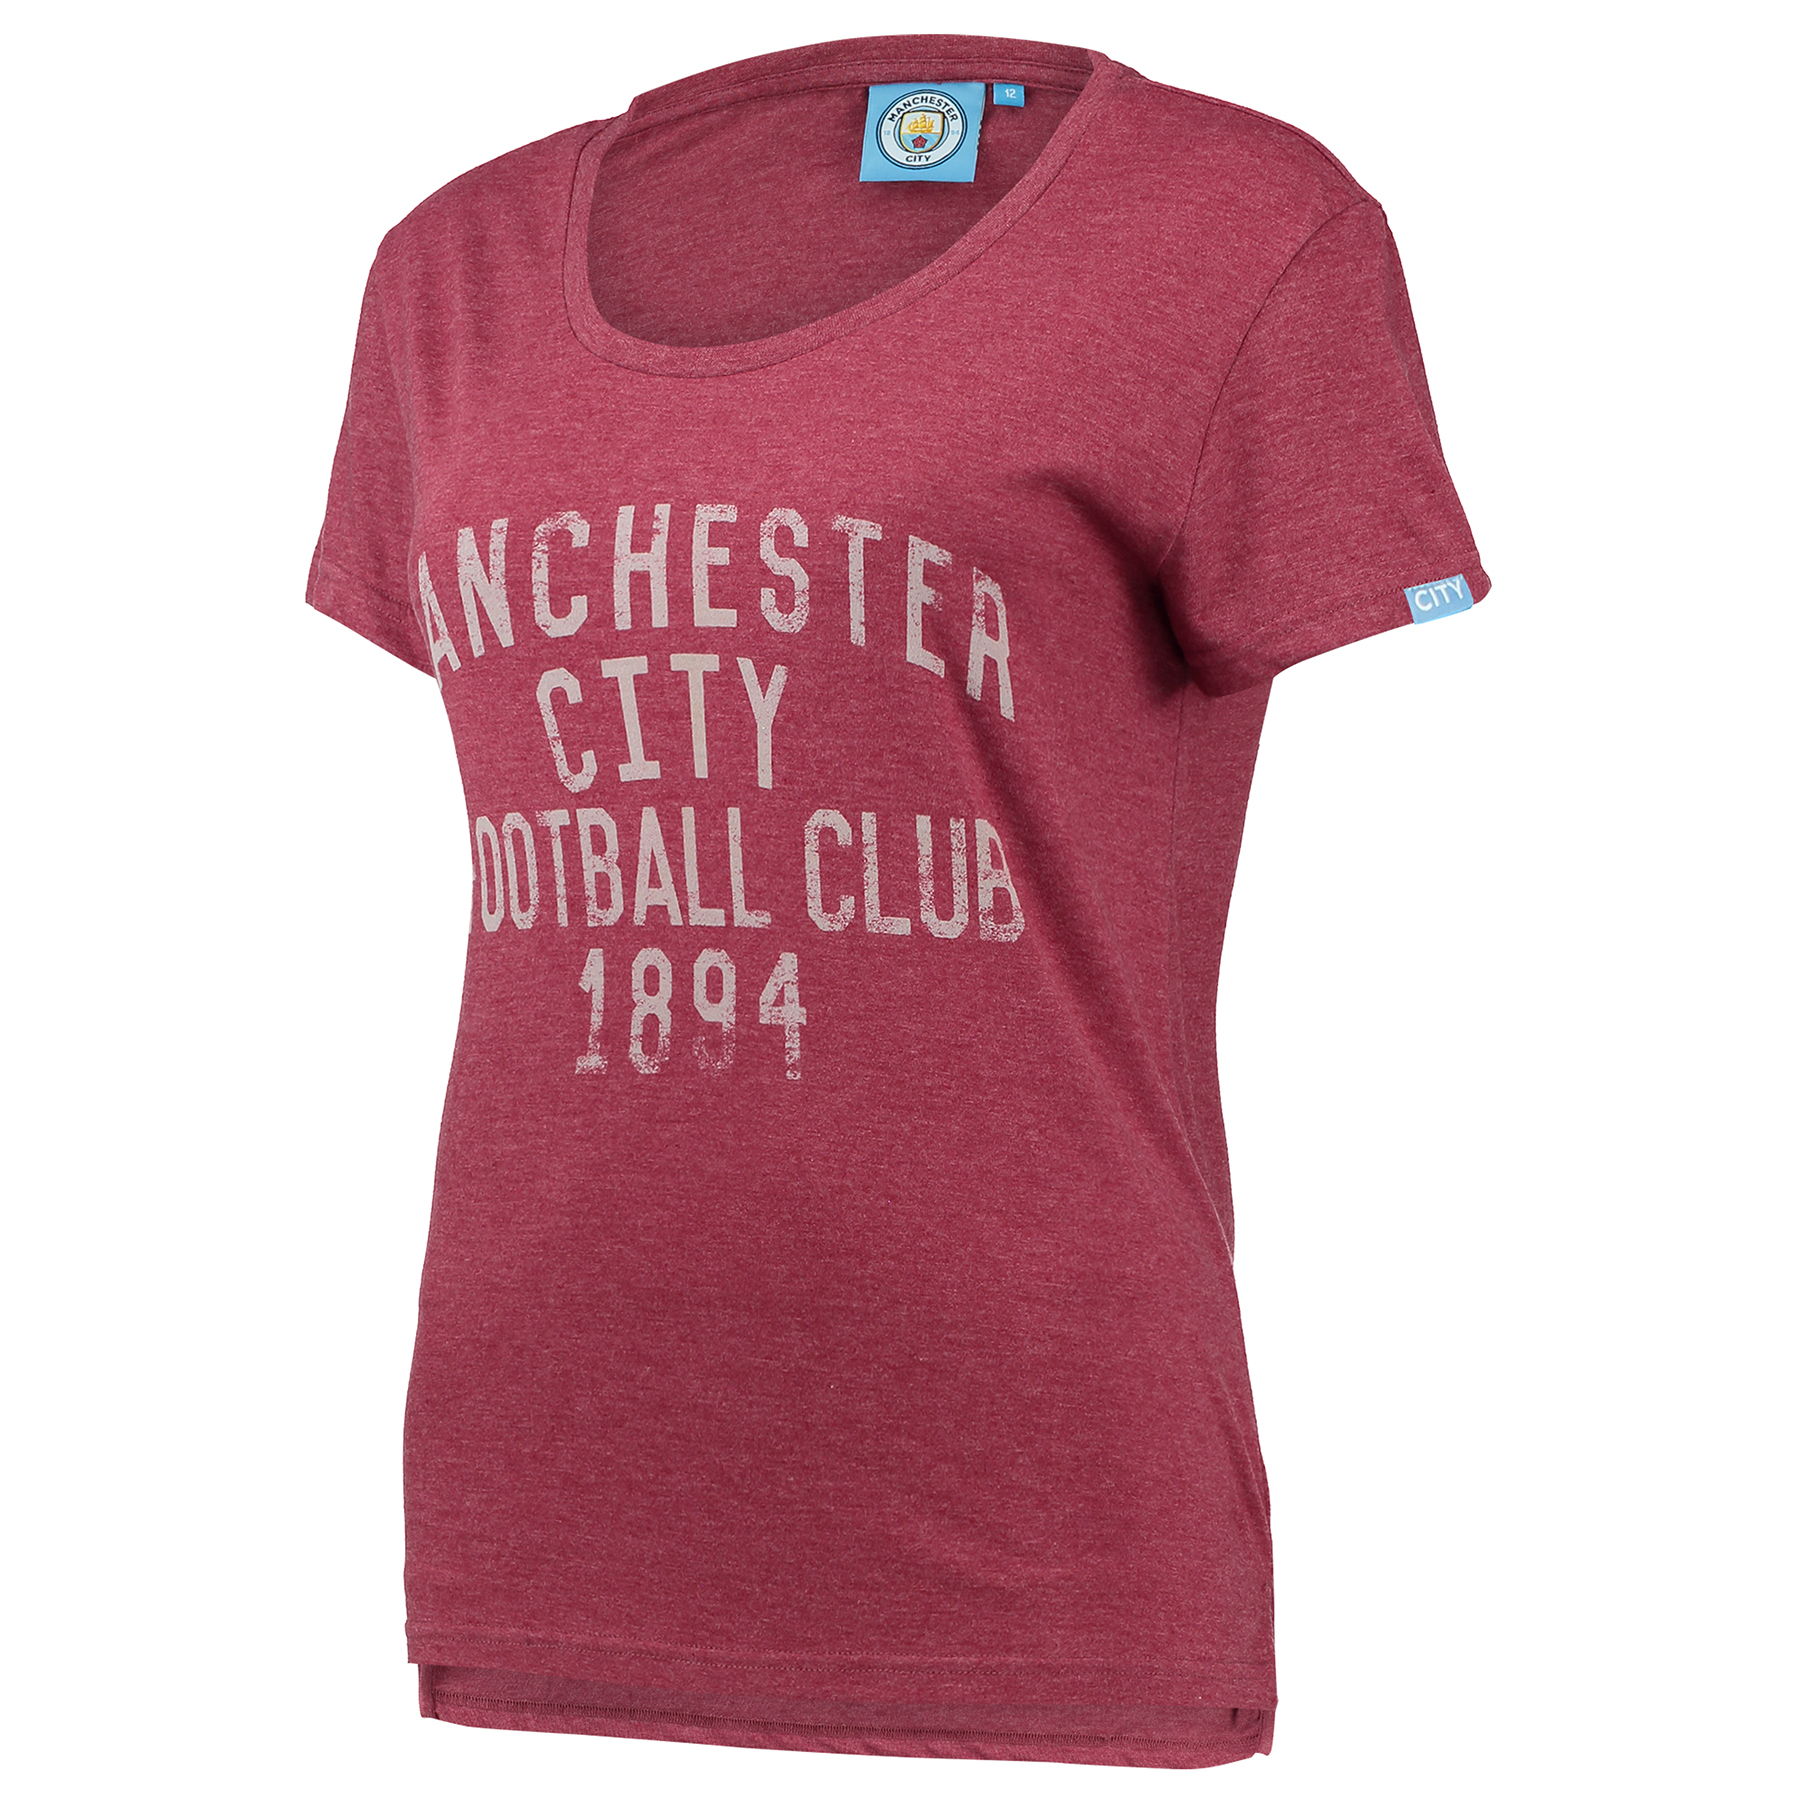 Manchester City Text T-Shirt - Maroon Marl - Womens